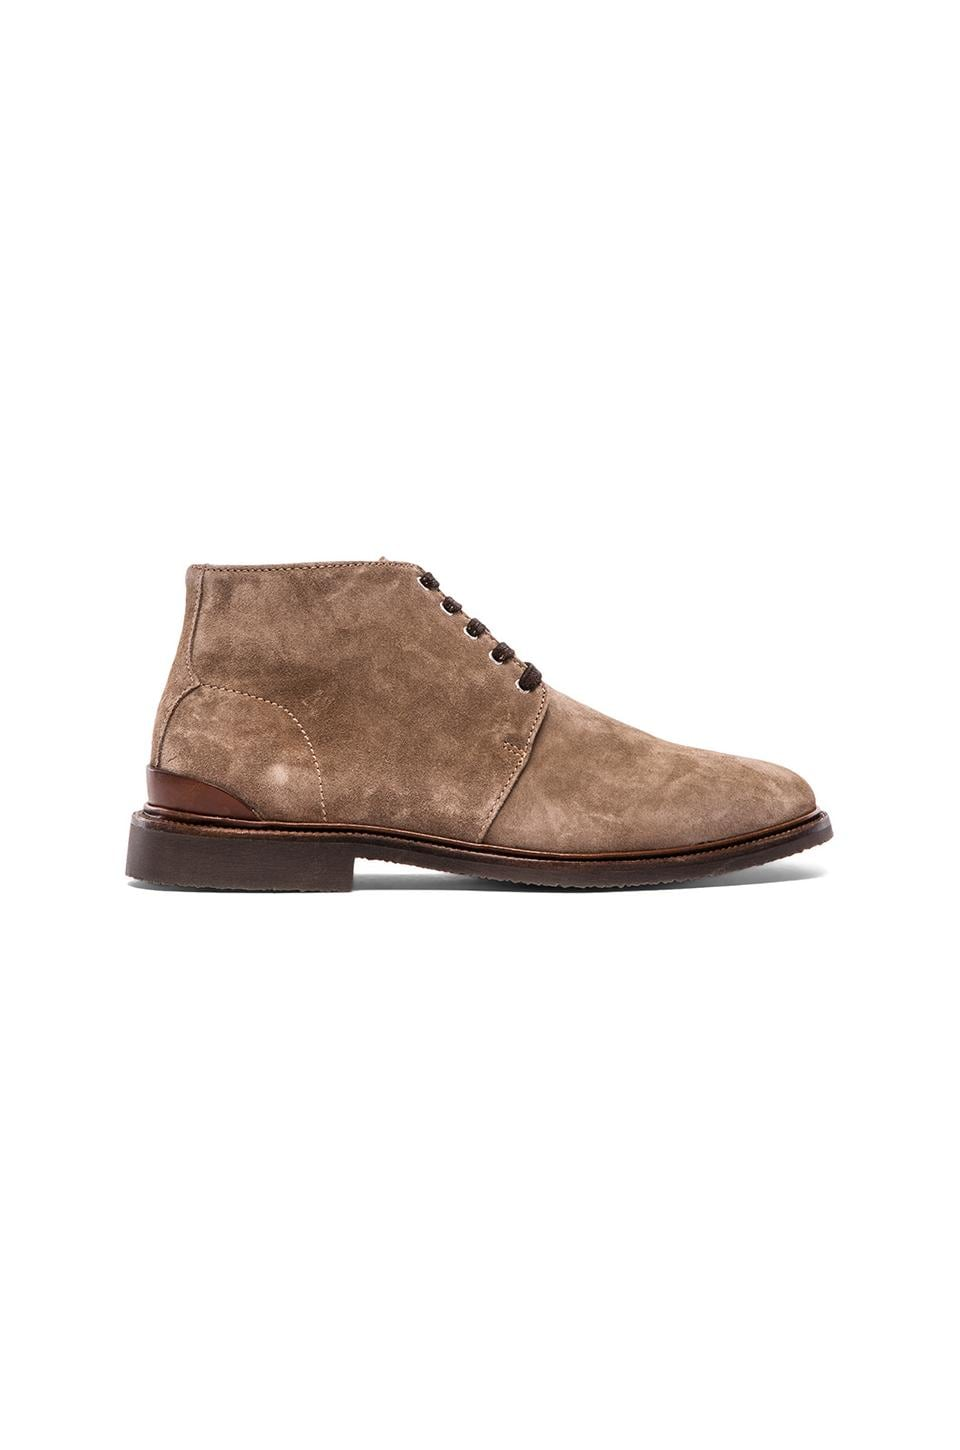 Rag & Bone Archer Rubber Desert Boot in Smoke